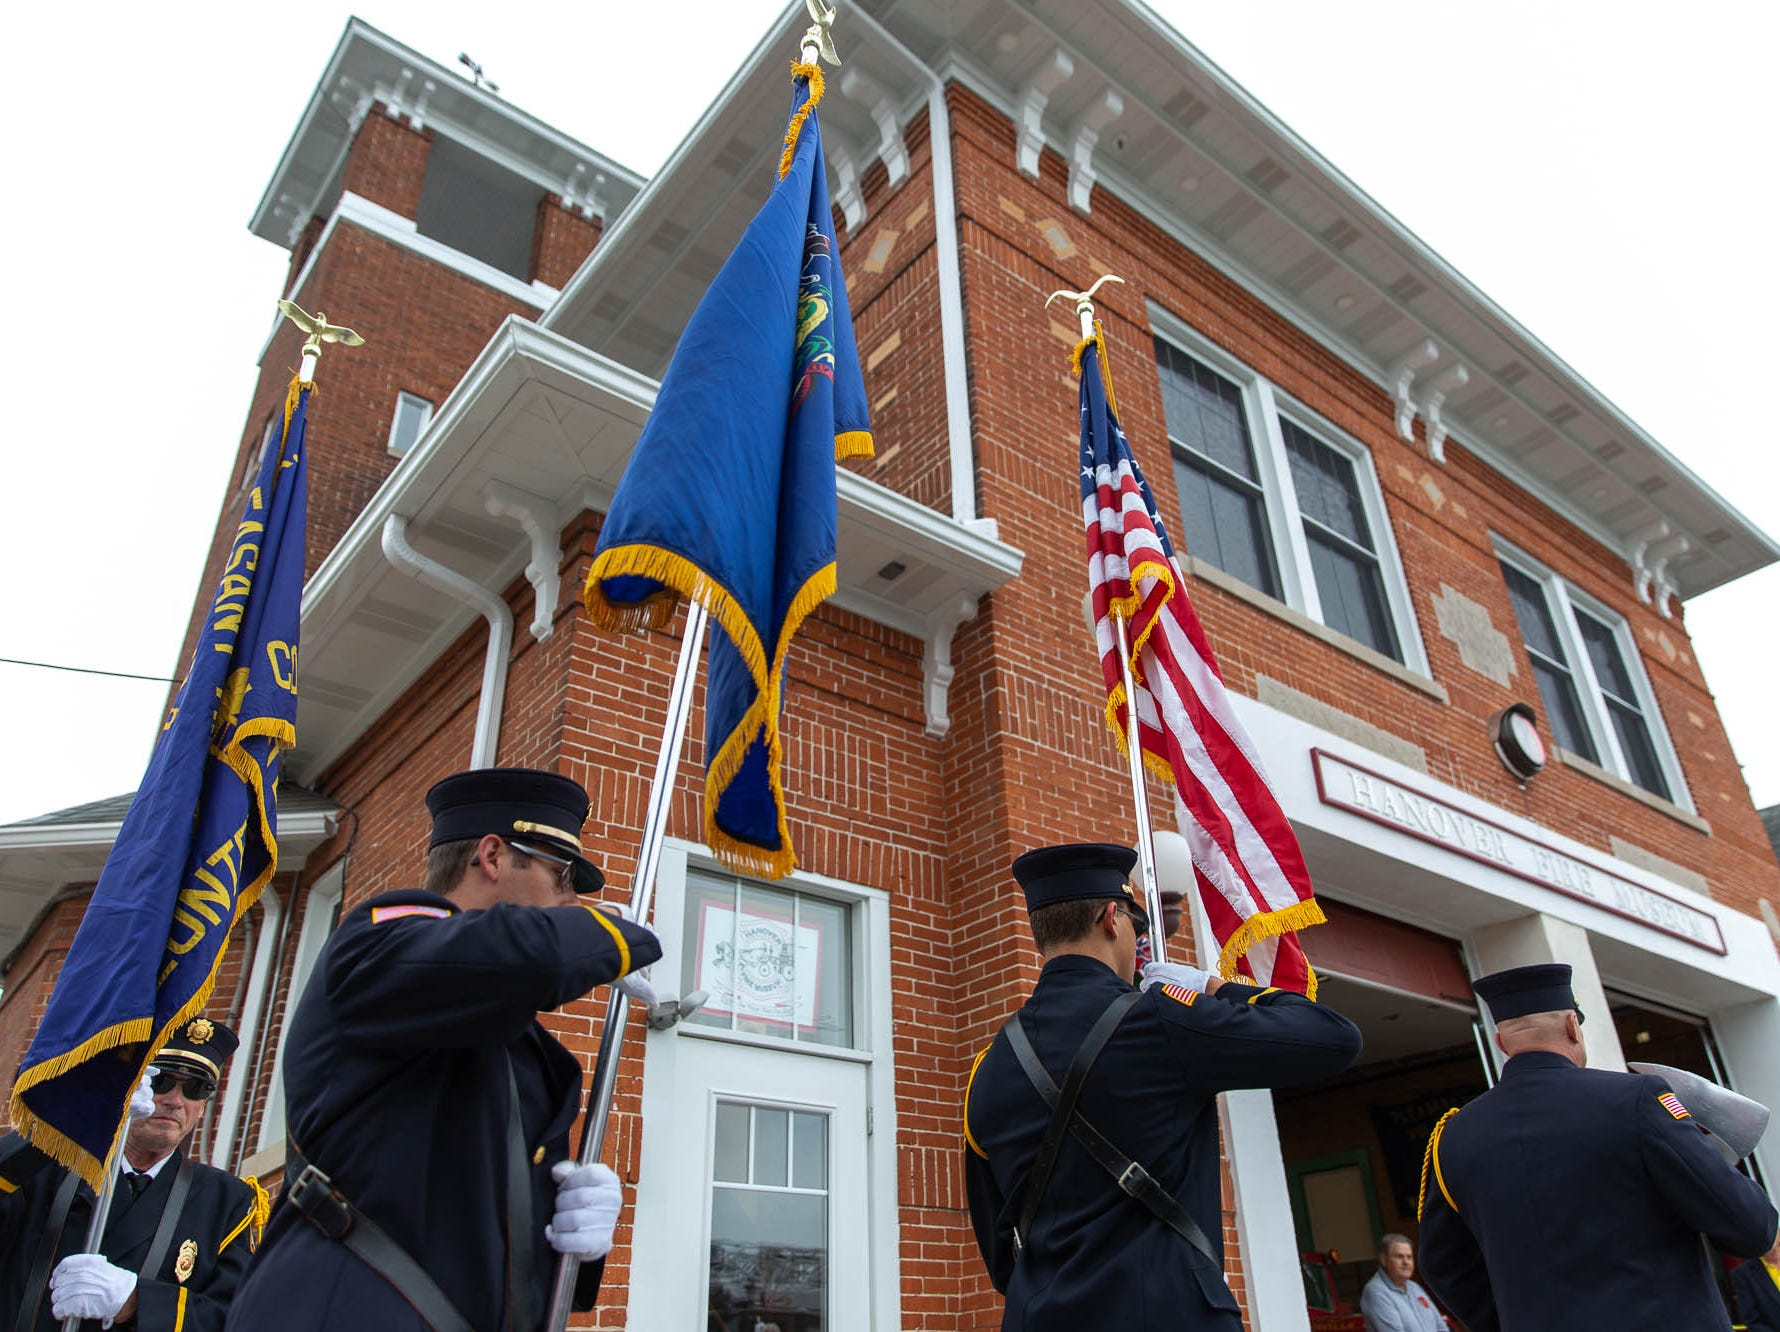 Firefighters from Pleasant Hill Fire Company present the colors as the honor guard during the dedication ceremony for the new Greater Hanover Area Fire Museum, Saturday, Sept. 1, 2018, in Hanover.